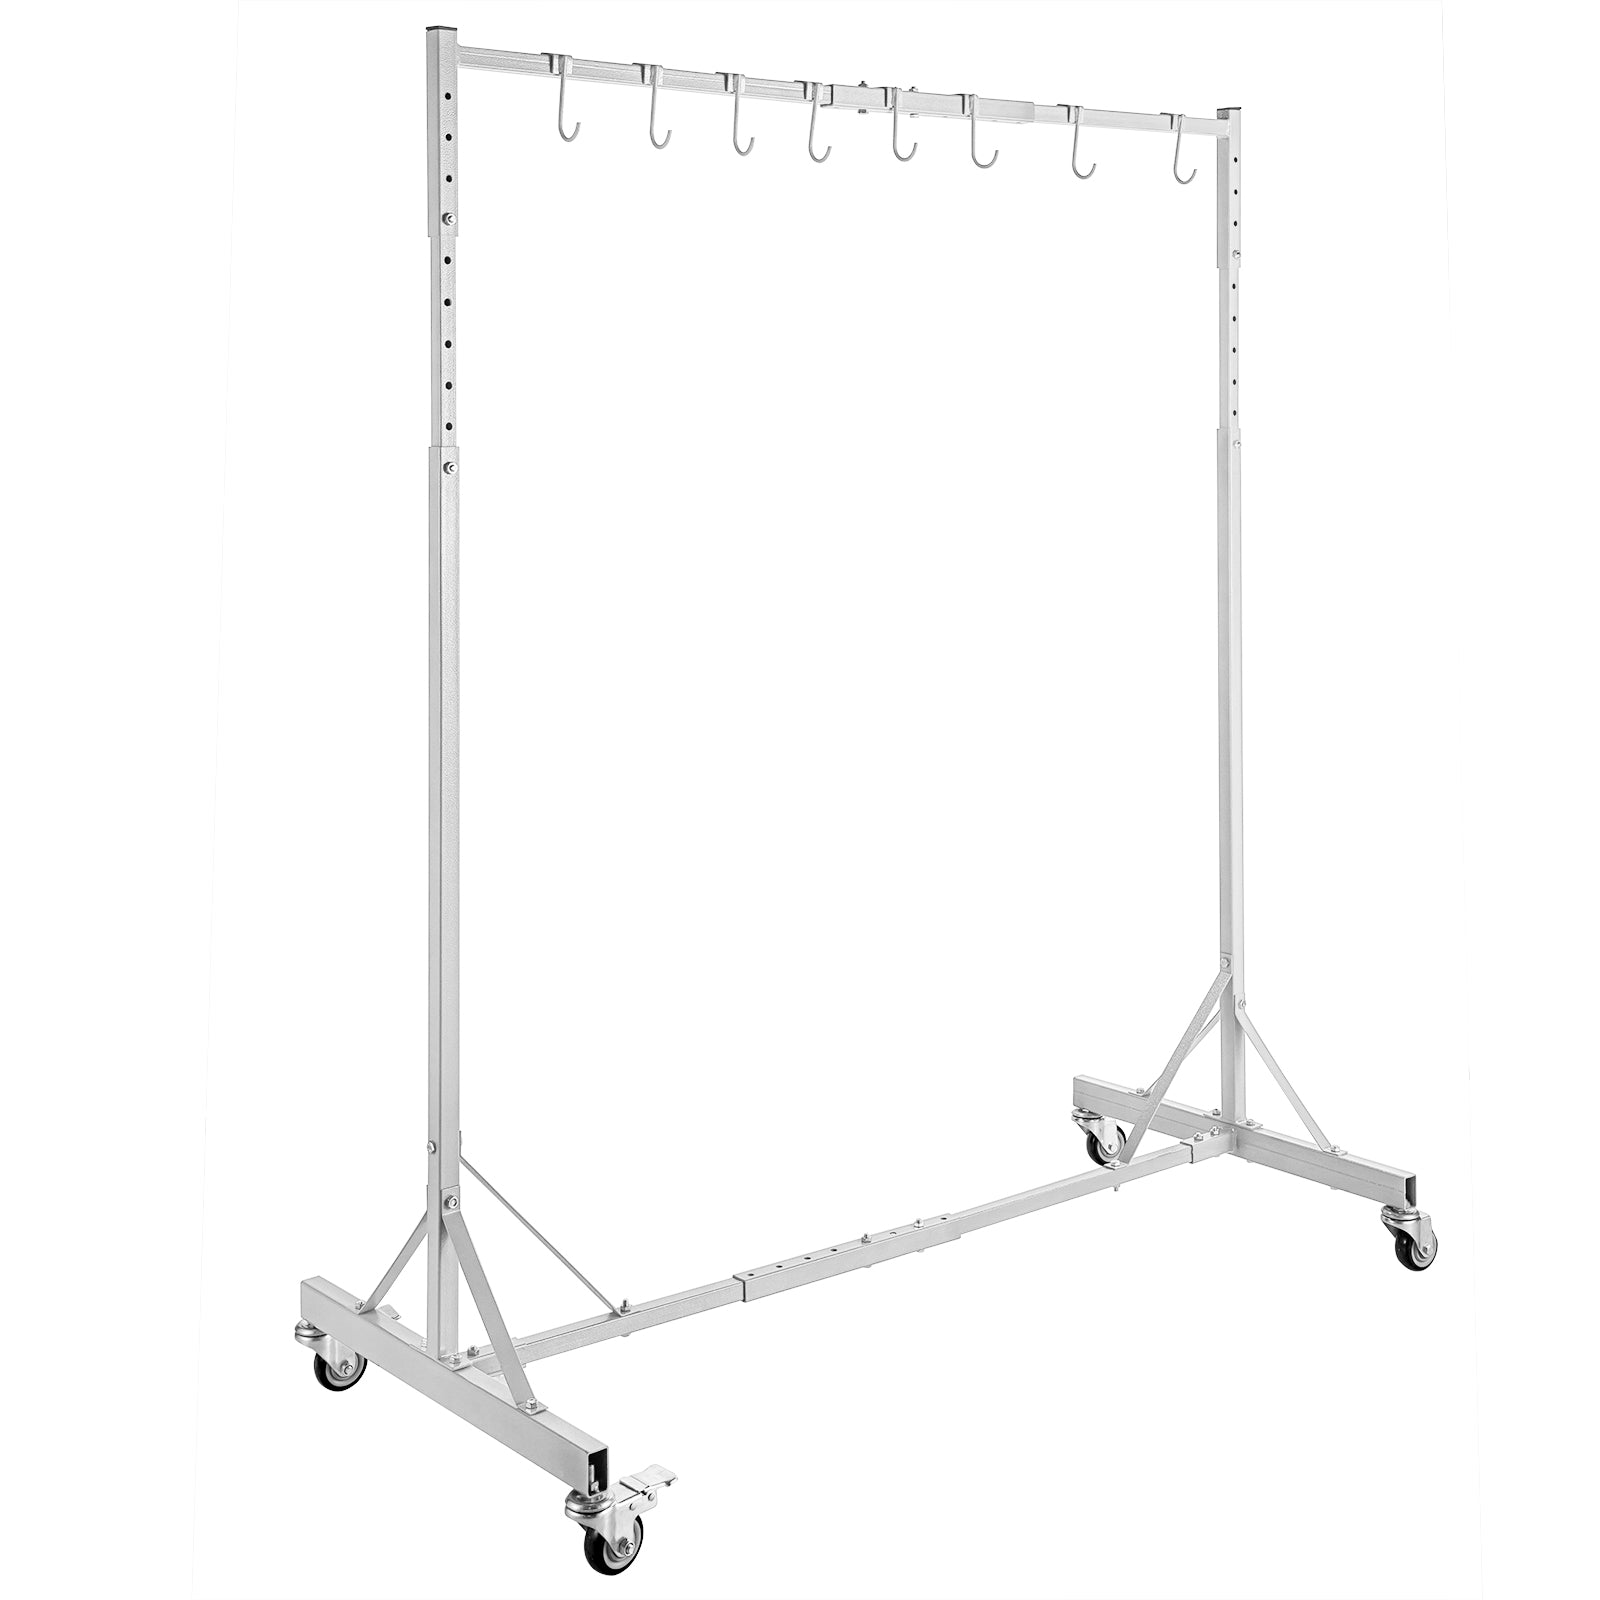 Automotive Spray Painting Rack Stand, Auto Body Shop Paint Booth Hood Parts